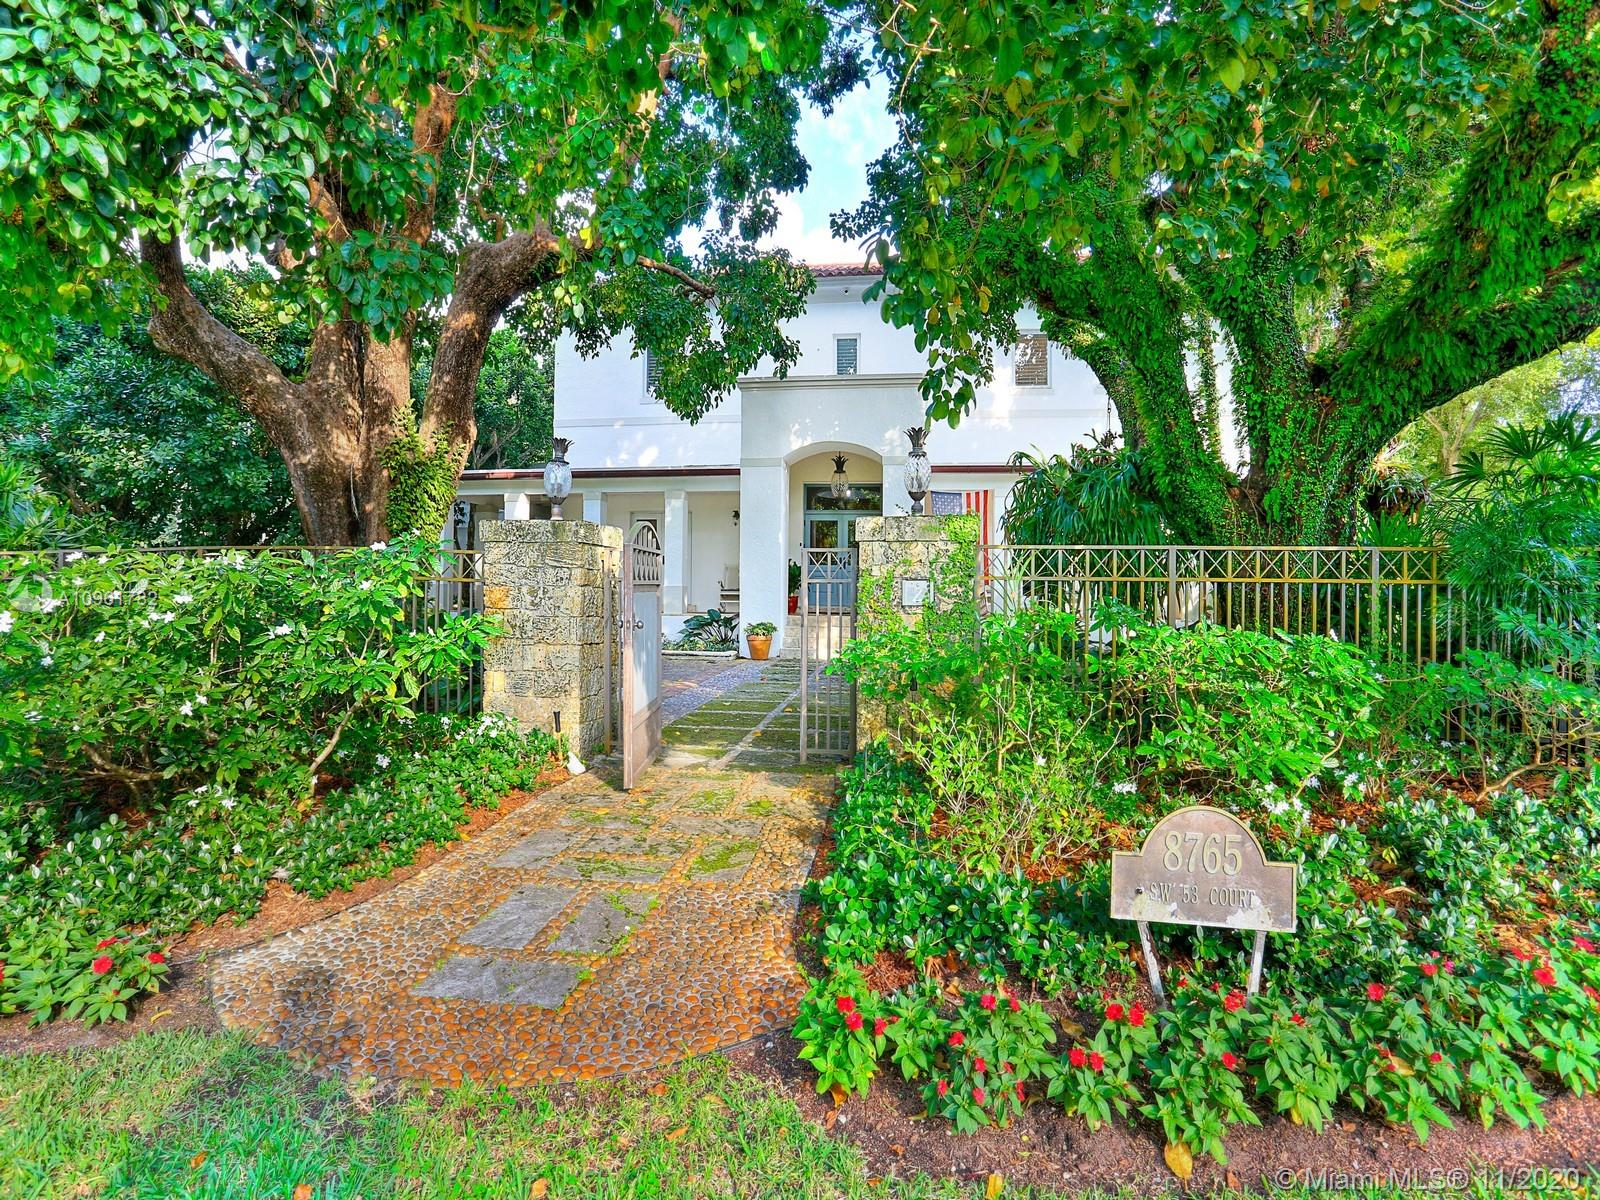 Situated on a lush, one acre lot in the coveted Ponce Davis neighborhood, this private and gated beautiful 5 bedroom, 5.5 bathroom home boasts strong traditional character perfect for a large family featuring formal living and dining rooms, large family room and recreational room all anchored around a modern kitchen with top-of-the-line stainless-steel appliances. Included on the main level is a private home office, staff bedroom ensuite and bonus study. The second floor features a master suite with large his and her closets and 3 additional bedrooms. The home also features impact windows & doors, two-car garage and whole house generator. The exterior has a beautiful pool, outdoor kitchen, cabana bath and manicured landscaping. Only minutes to local parks and excellent A rated schools.